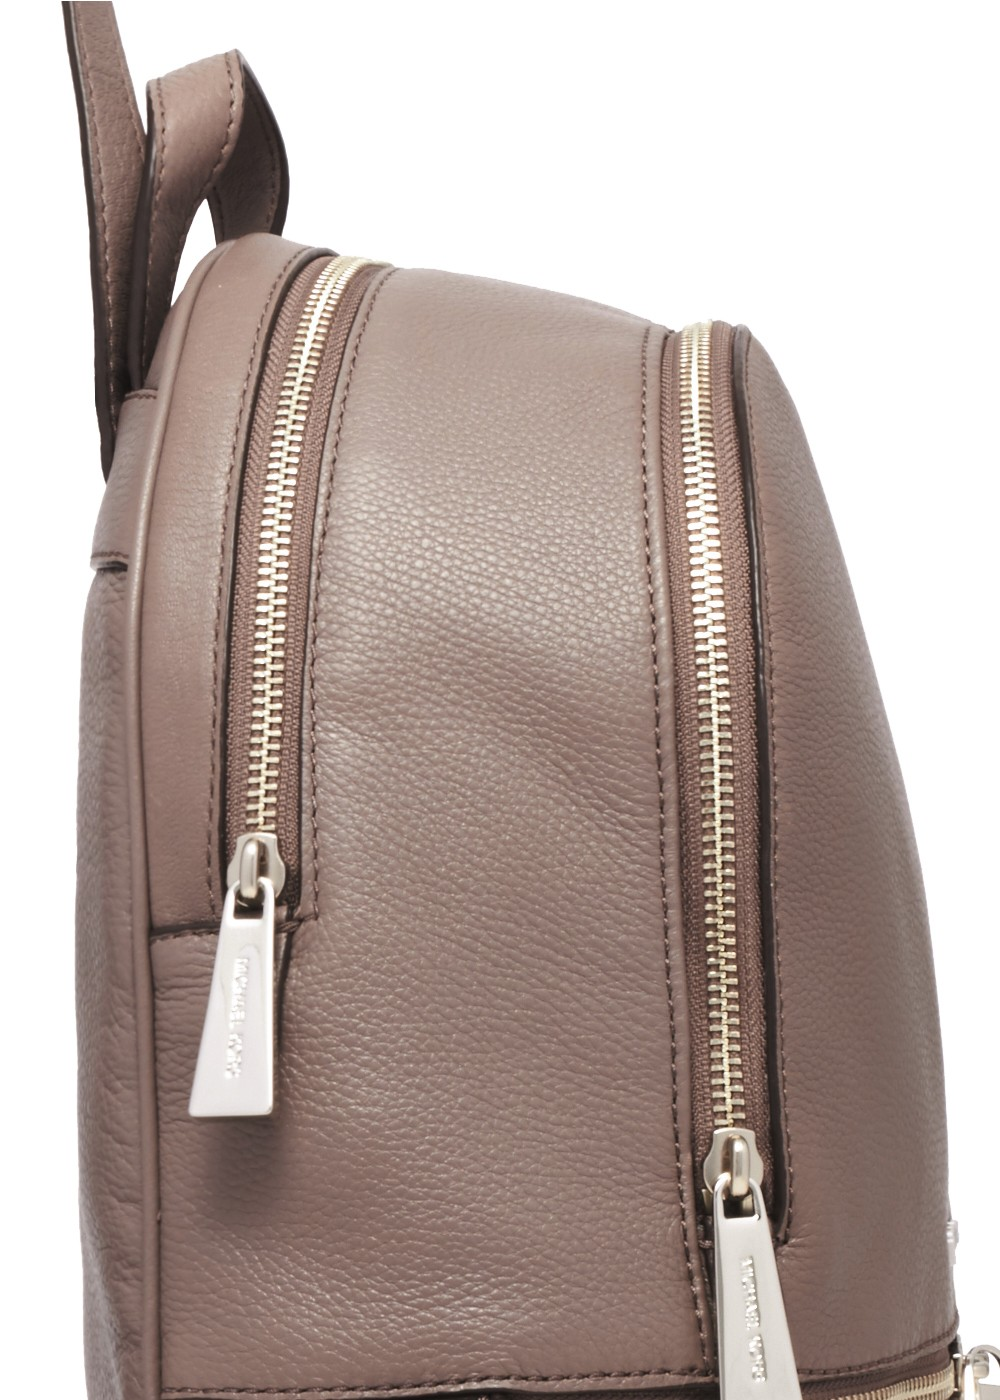 【MICHAEL KORS】Medium Back Pack|Cinder|バックパック・リュック|MICHAEL KORS (N2)